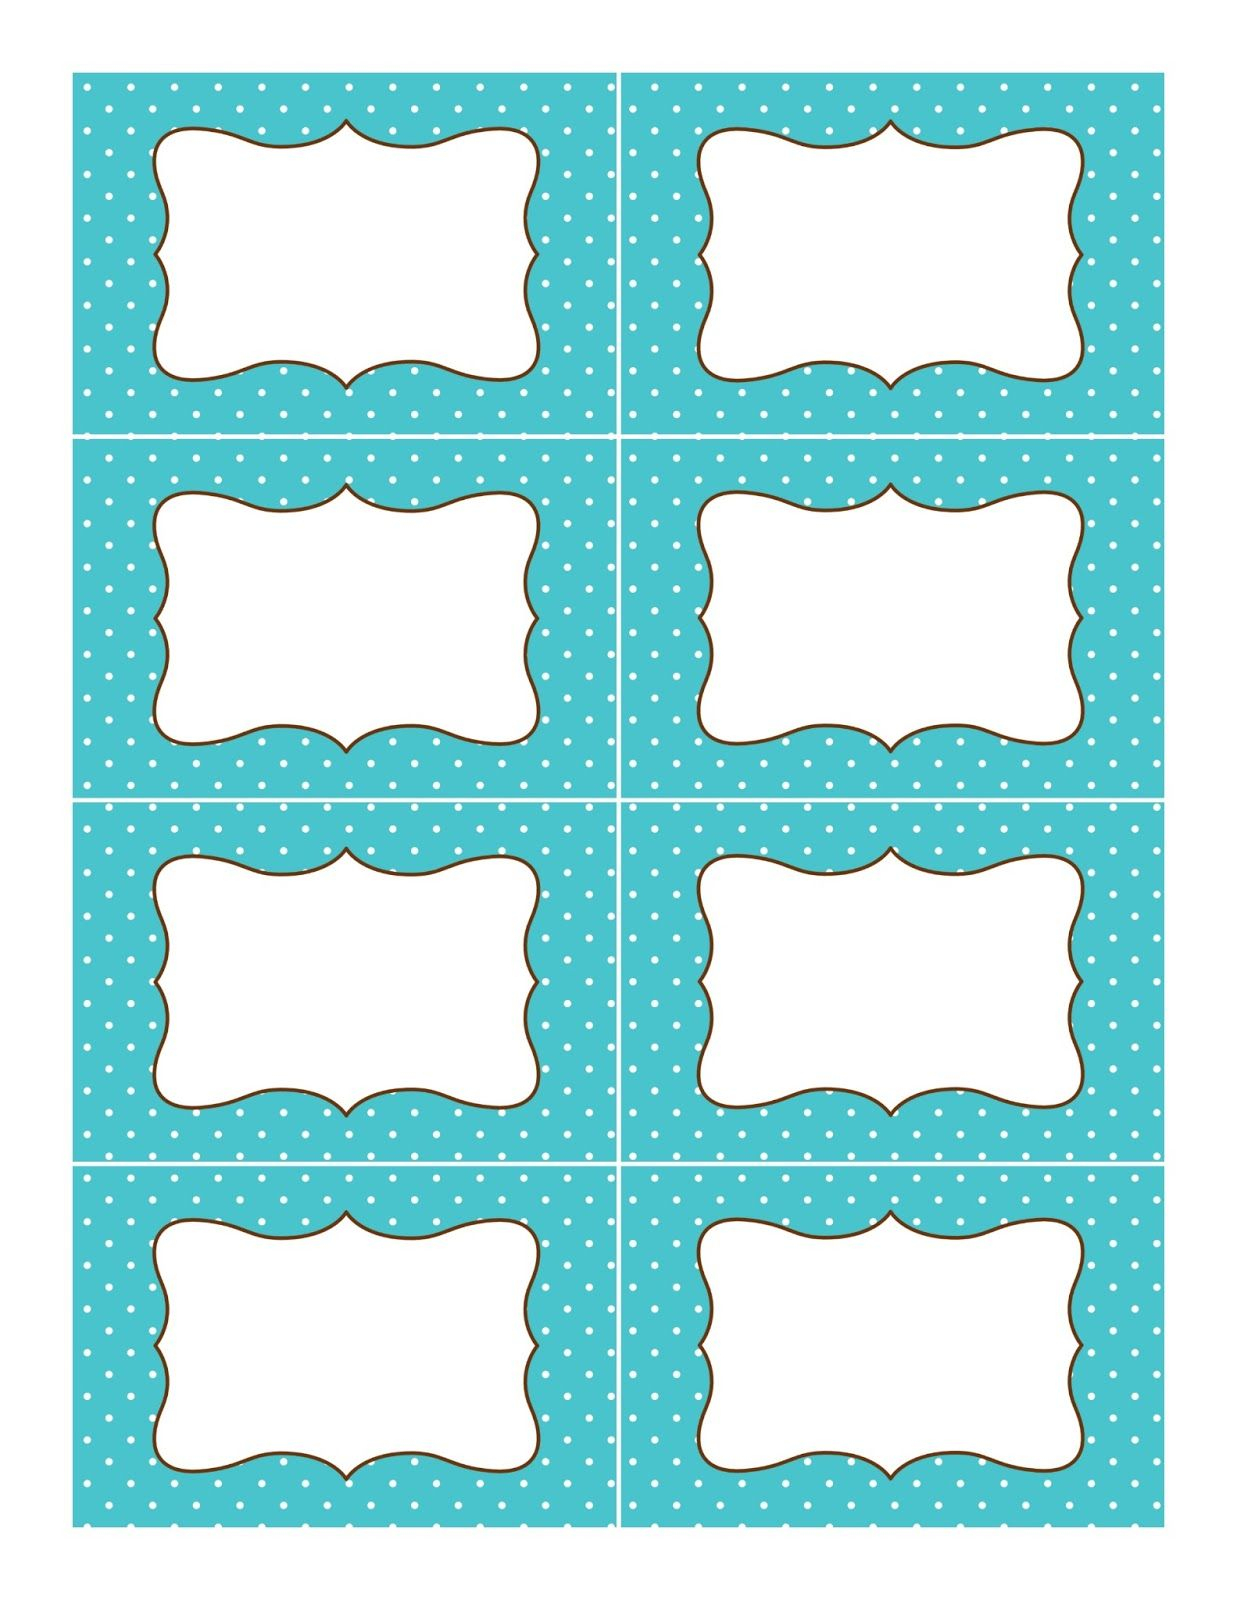 Candy Buffet Supplies: Free Printable Labels | Organization - Free Editable Printable Labels